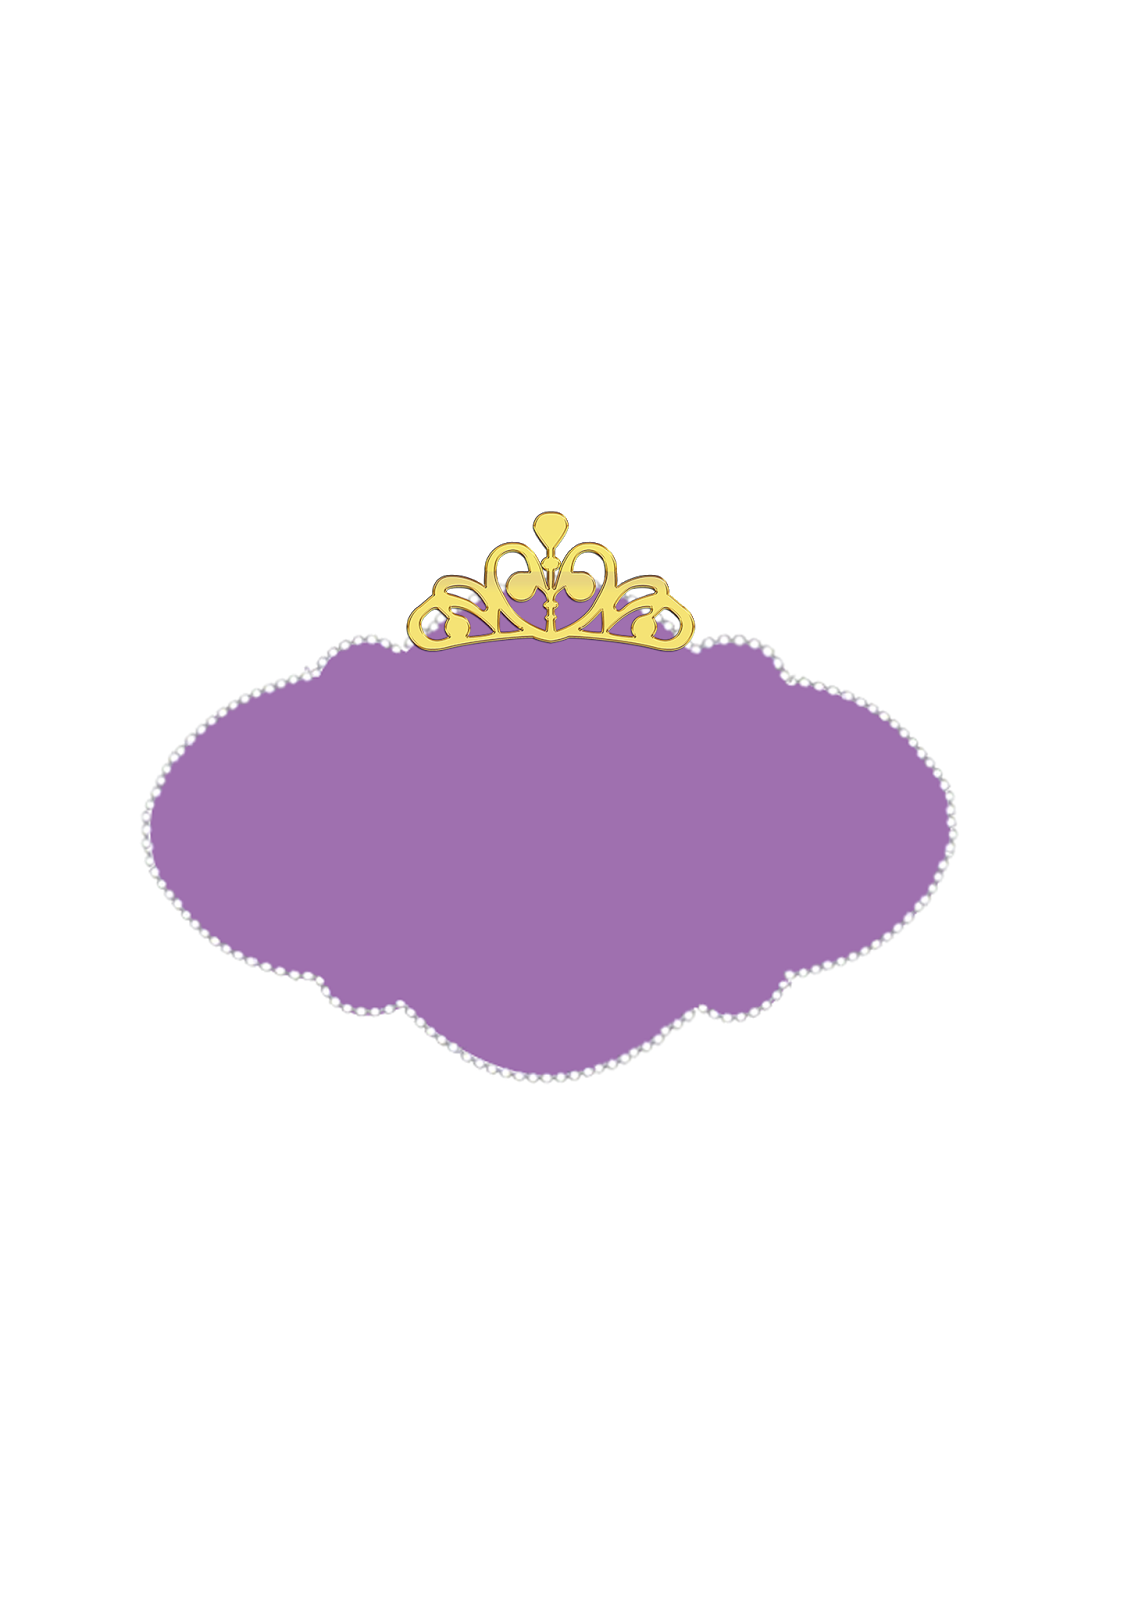 sofia the first crown clipart